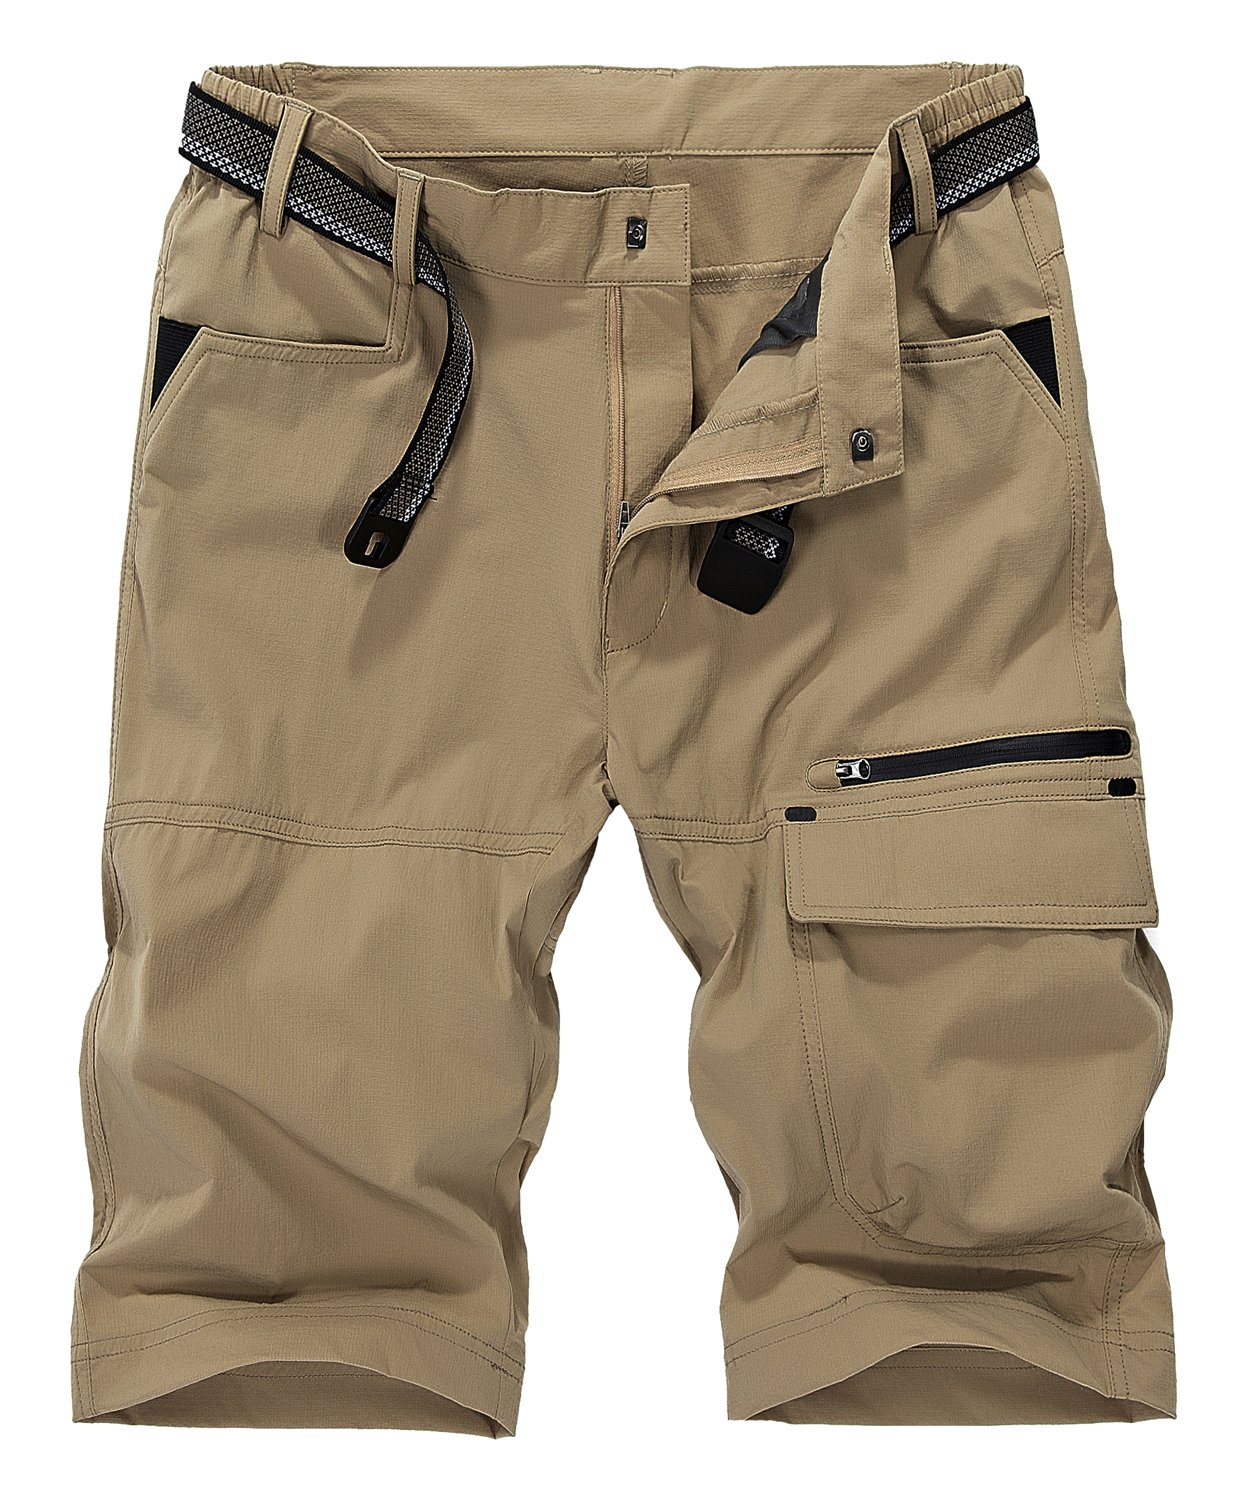 Vcansion Men's Outdoor Lightweight Quick Dry Hiking Shorts Sports Casual Shorts Khaki US 32 by Vcansion